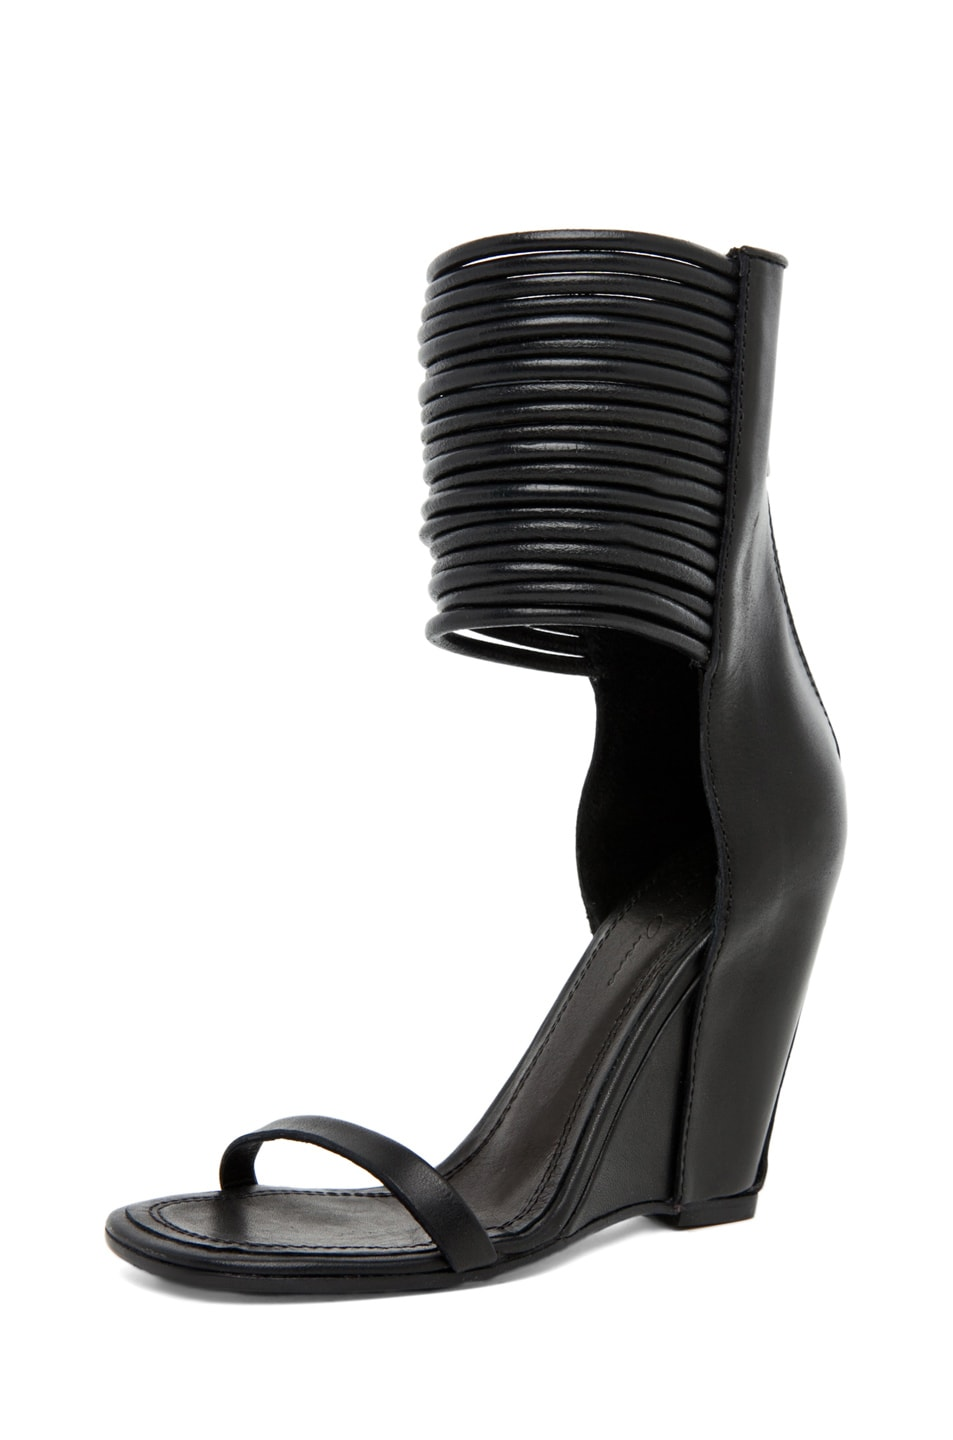 Image 2 of Rick Owens Cord Sandal in Black